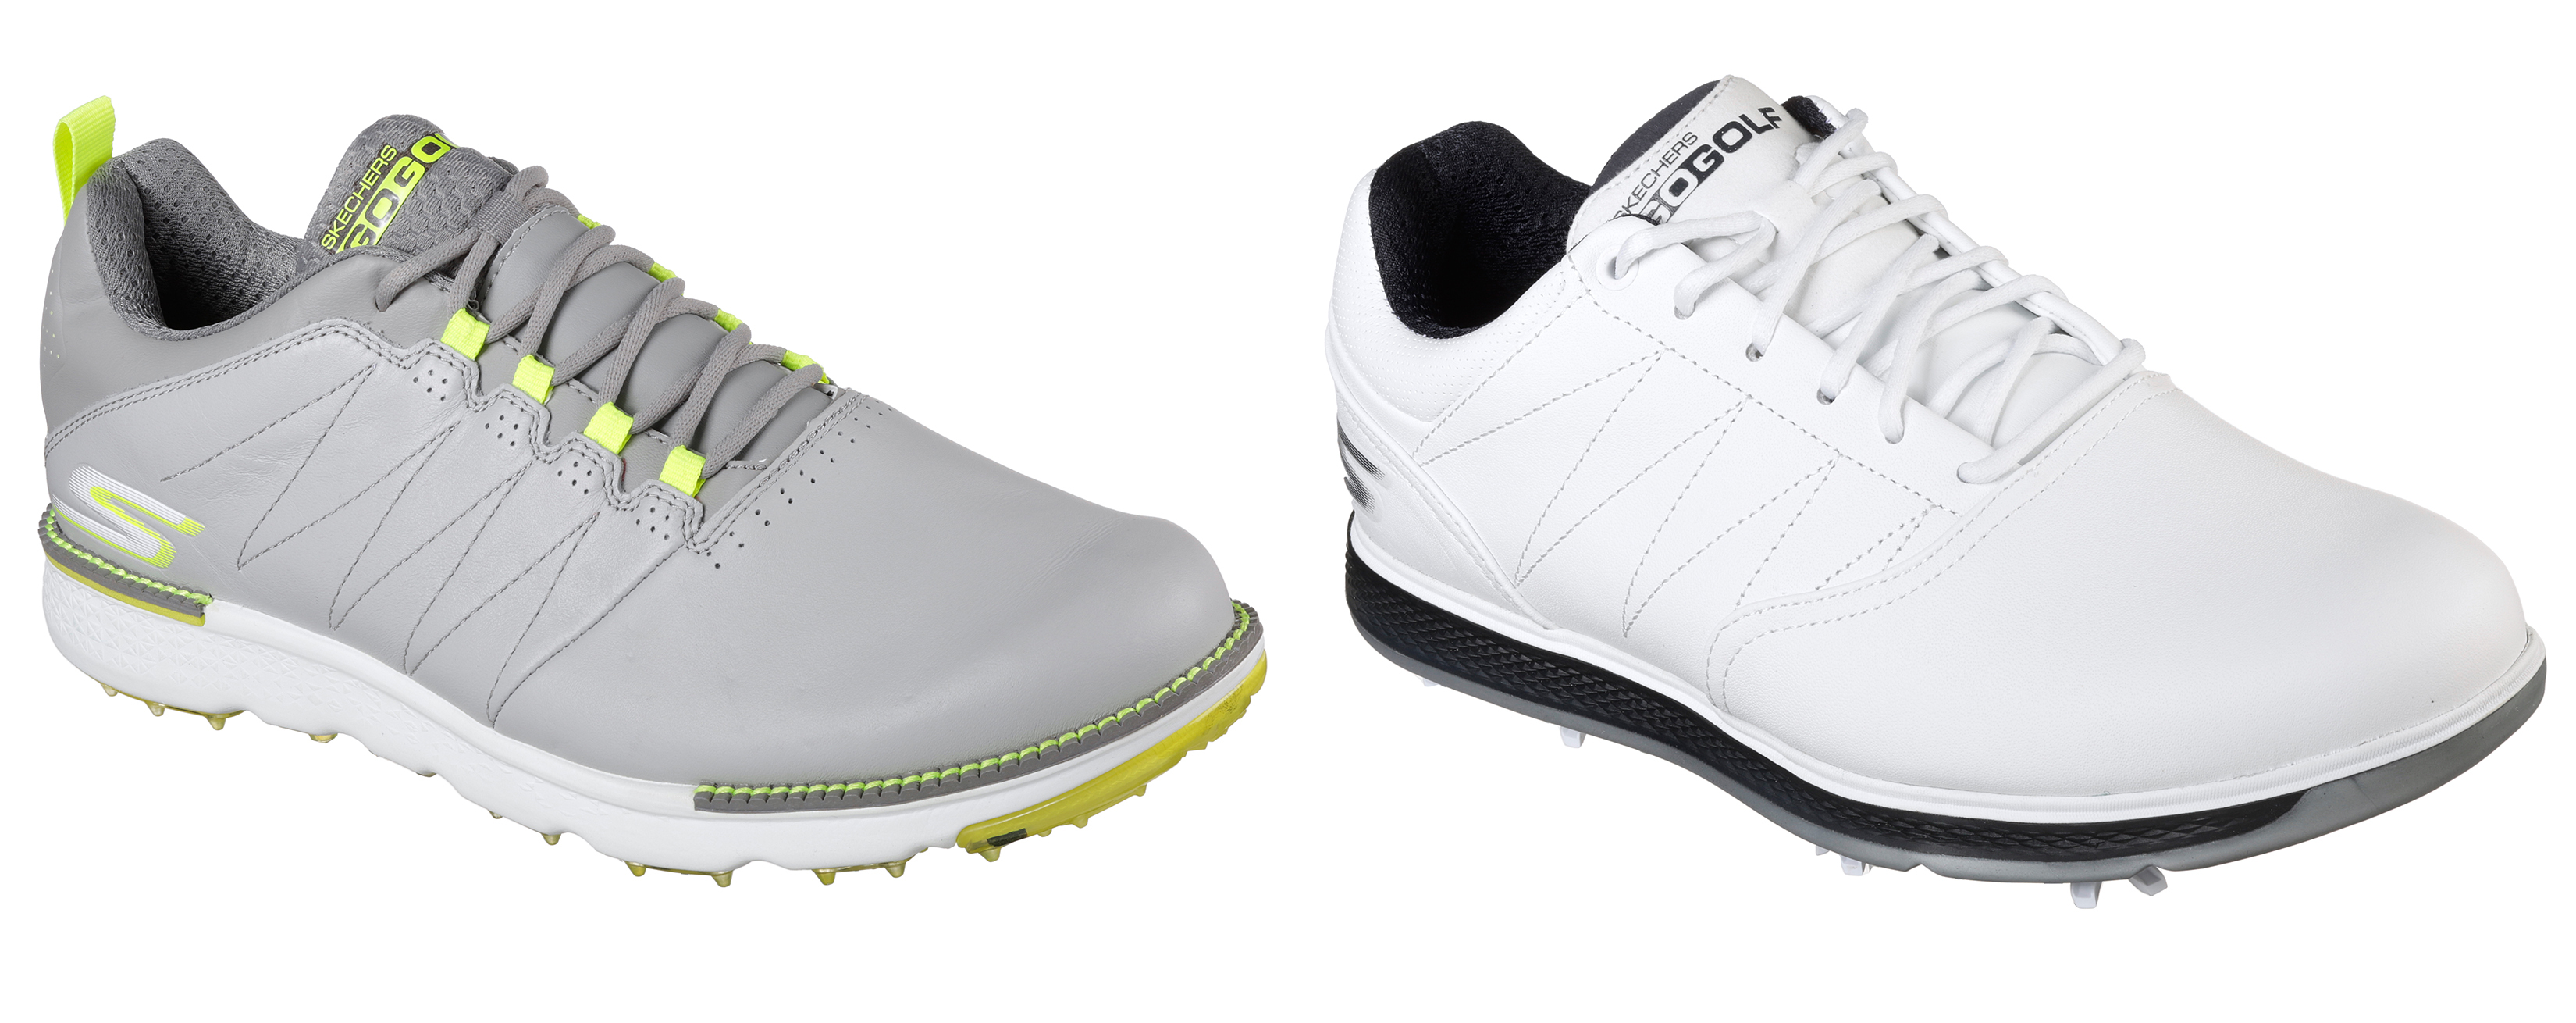 Skechers Performance Receives Honors for Best Golf Shoe in 2018 | Business  Wire